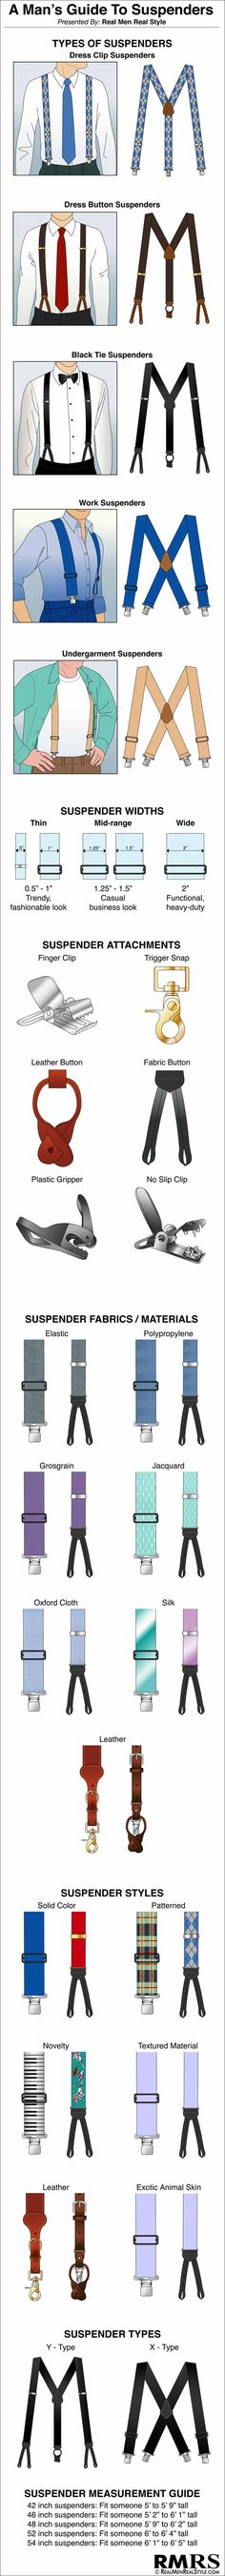 A Man's Guide To Suspenders | Trouser Braces Infographic | Suspender Guide (via @antoniocenteno)